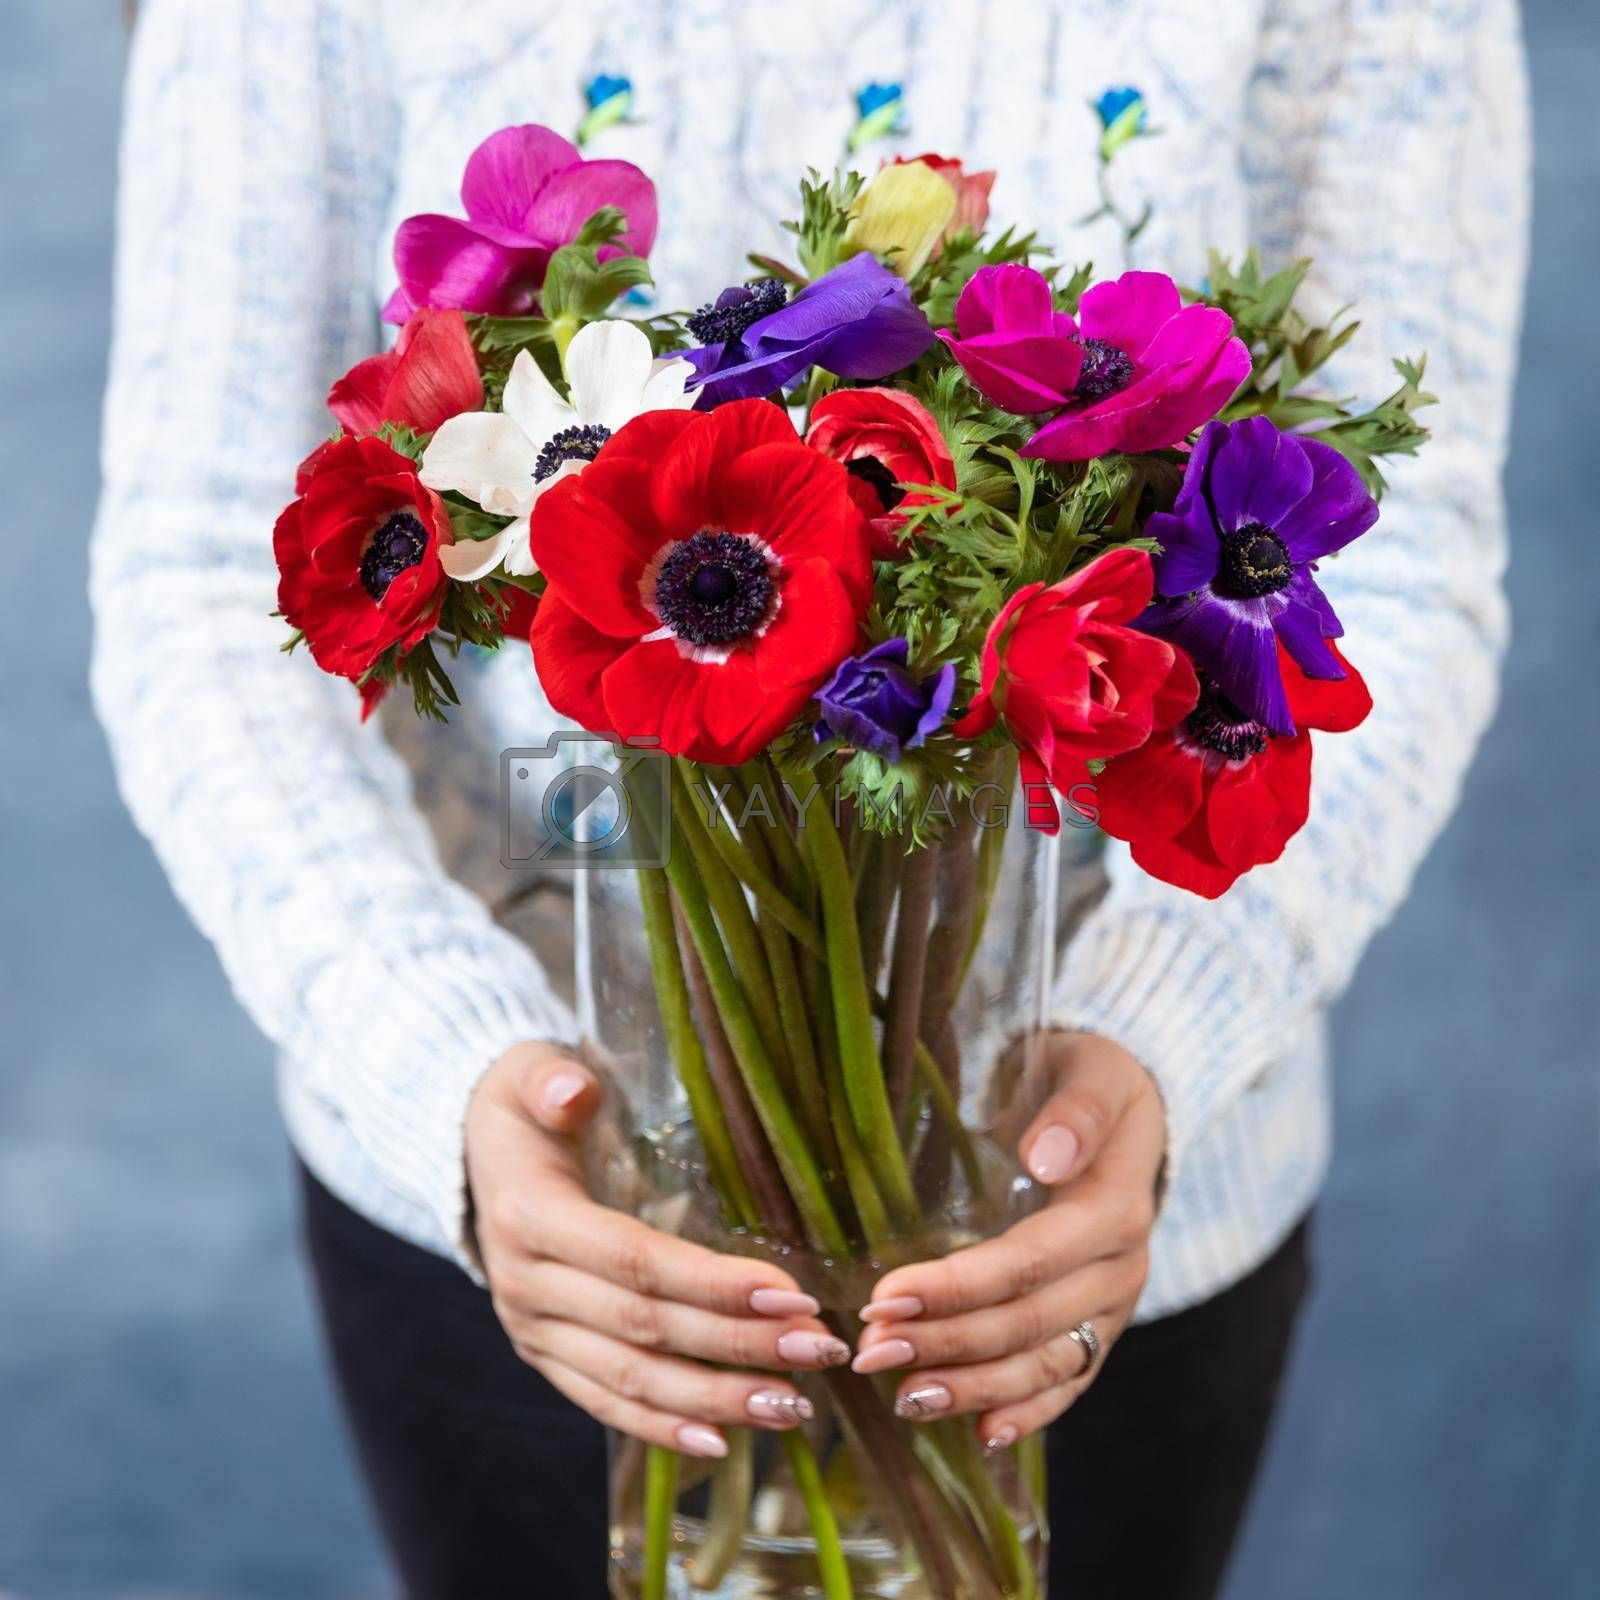 Woman holding red, magenta, pink Papaver rhoeas, Common poppy flower bouquet